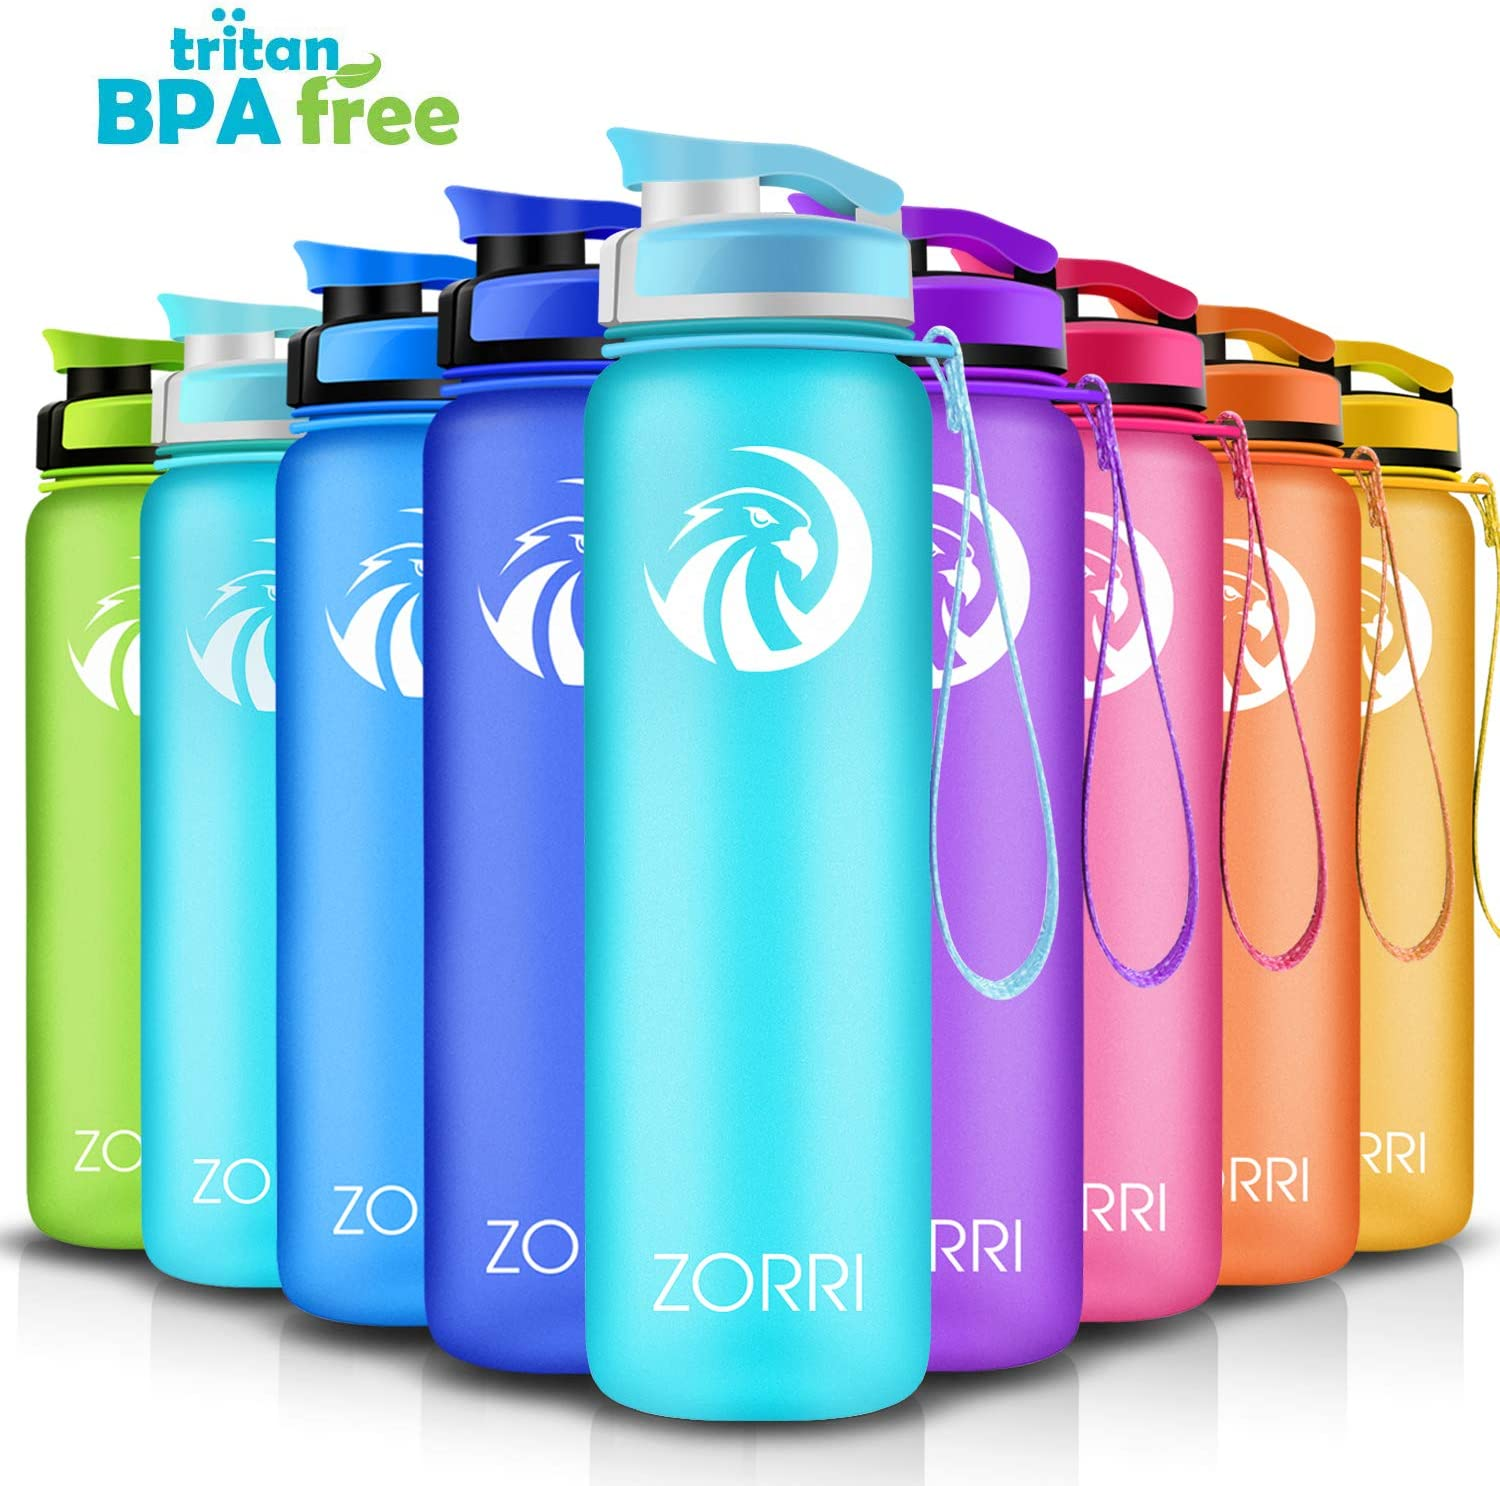 Best Sports Water Bottle 1L/ 1.2 Litre/ 600/ 800ml, Leak Proof, BPA Free Lightweight Reusable Gym Portable Large Drink Bottles With Filter for Kids, Cycling, Hiking, Running, Camping, Flip Top Lid